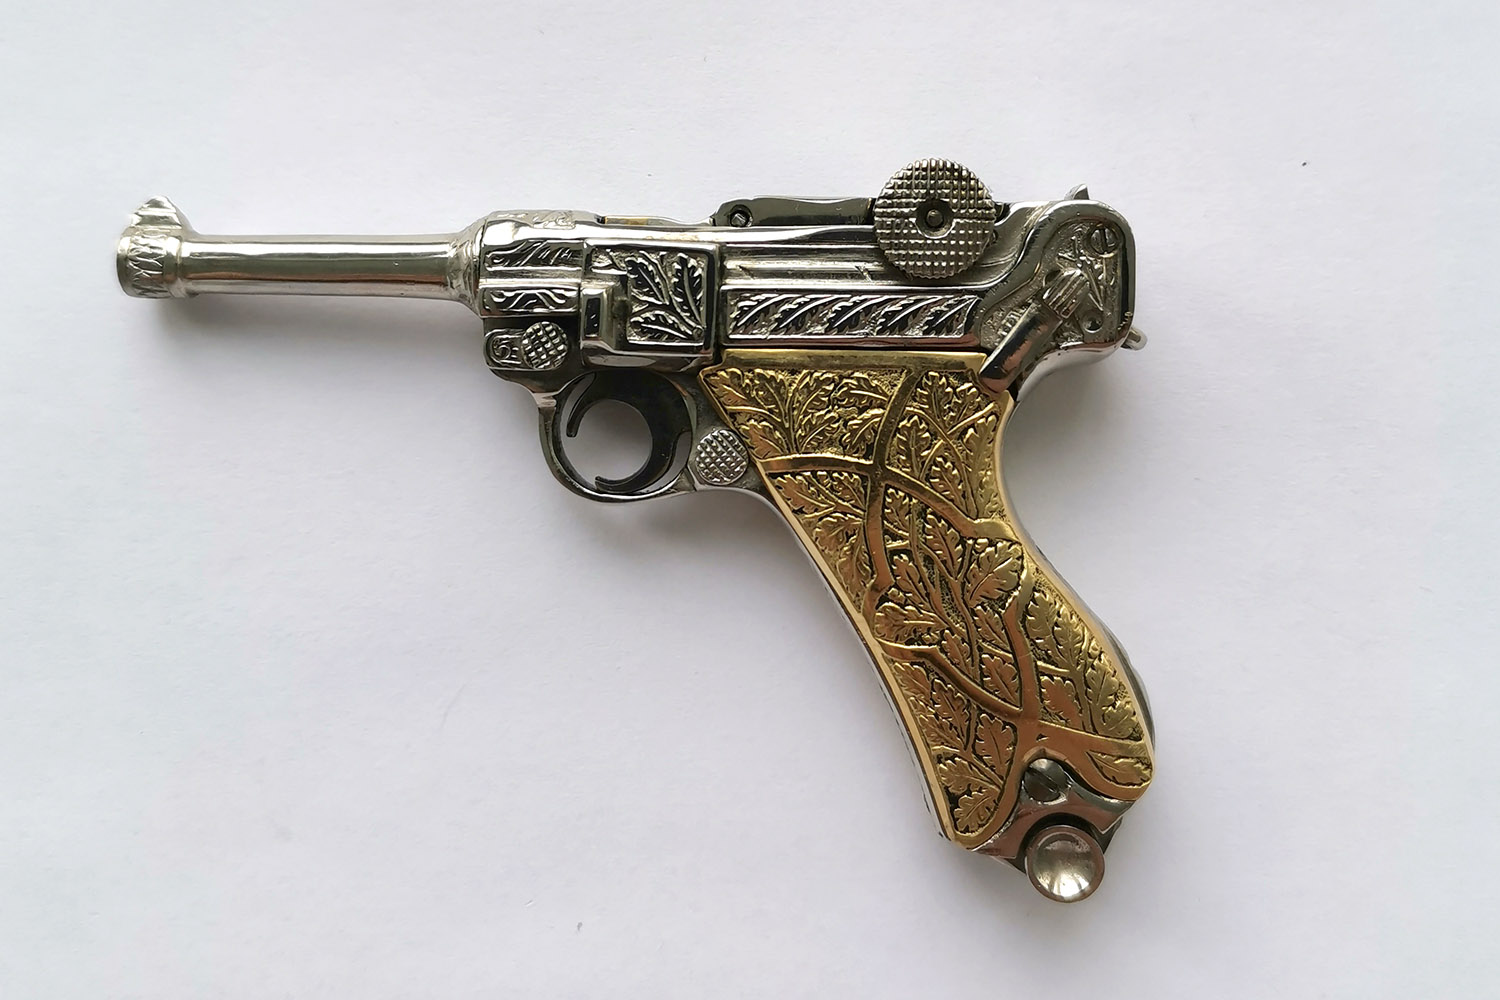 2,5mm Luger P08 with engraving